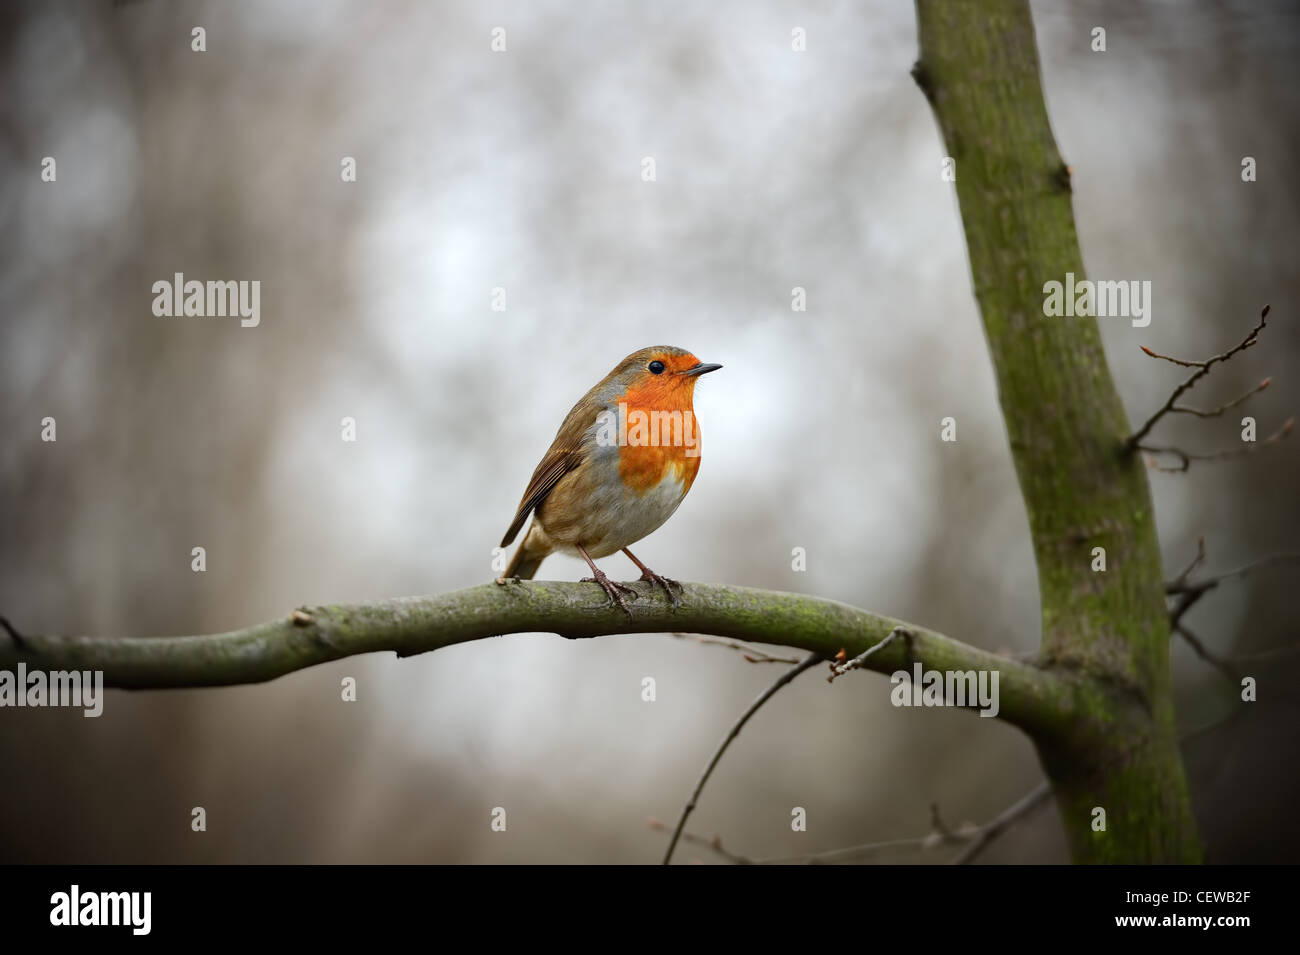 European Robin Redbreast (erithacus rubecula melophilus) perched on a branch - Stock Image